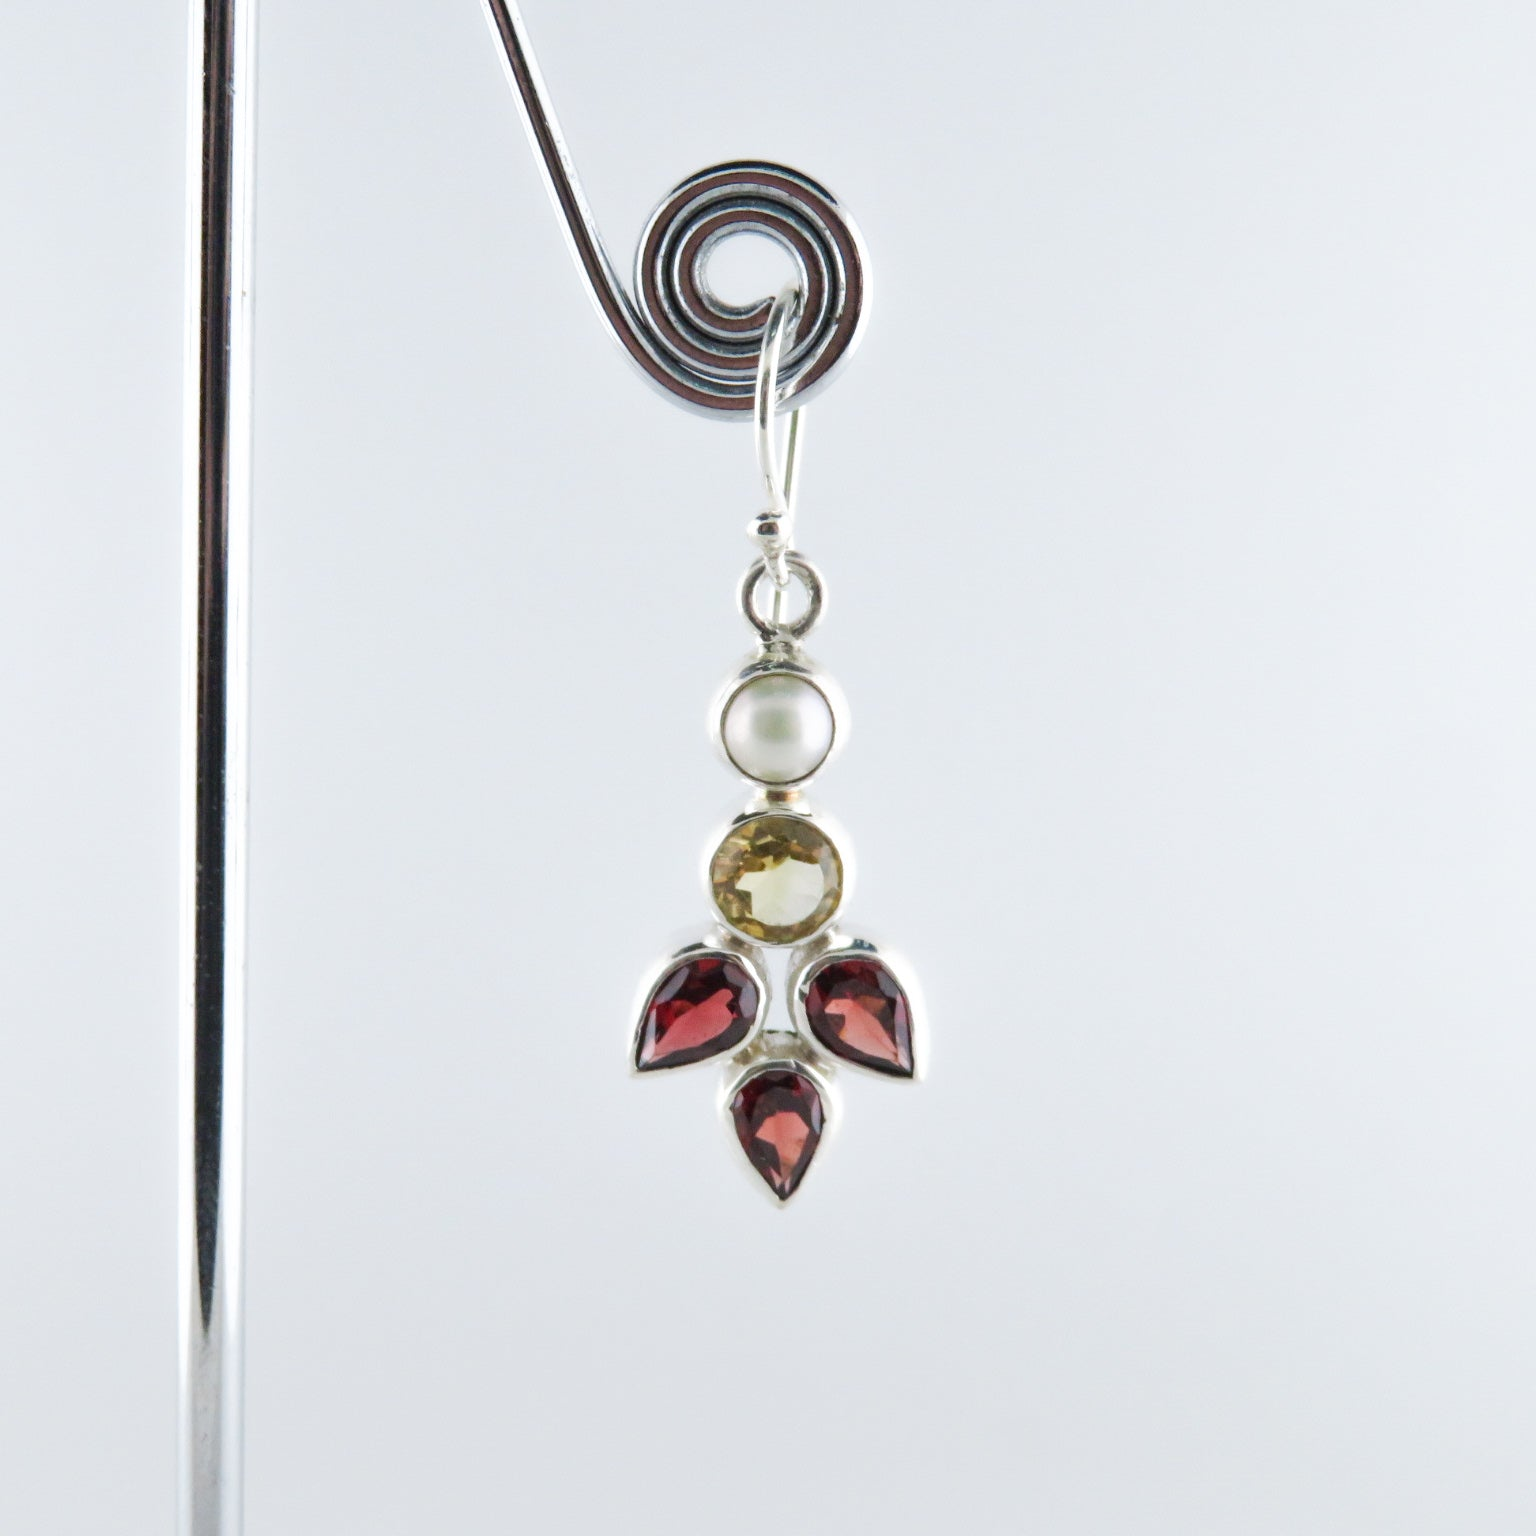 Citrine Sterling Silver Earrings with Garnet and Fresh Water Pearls